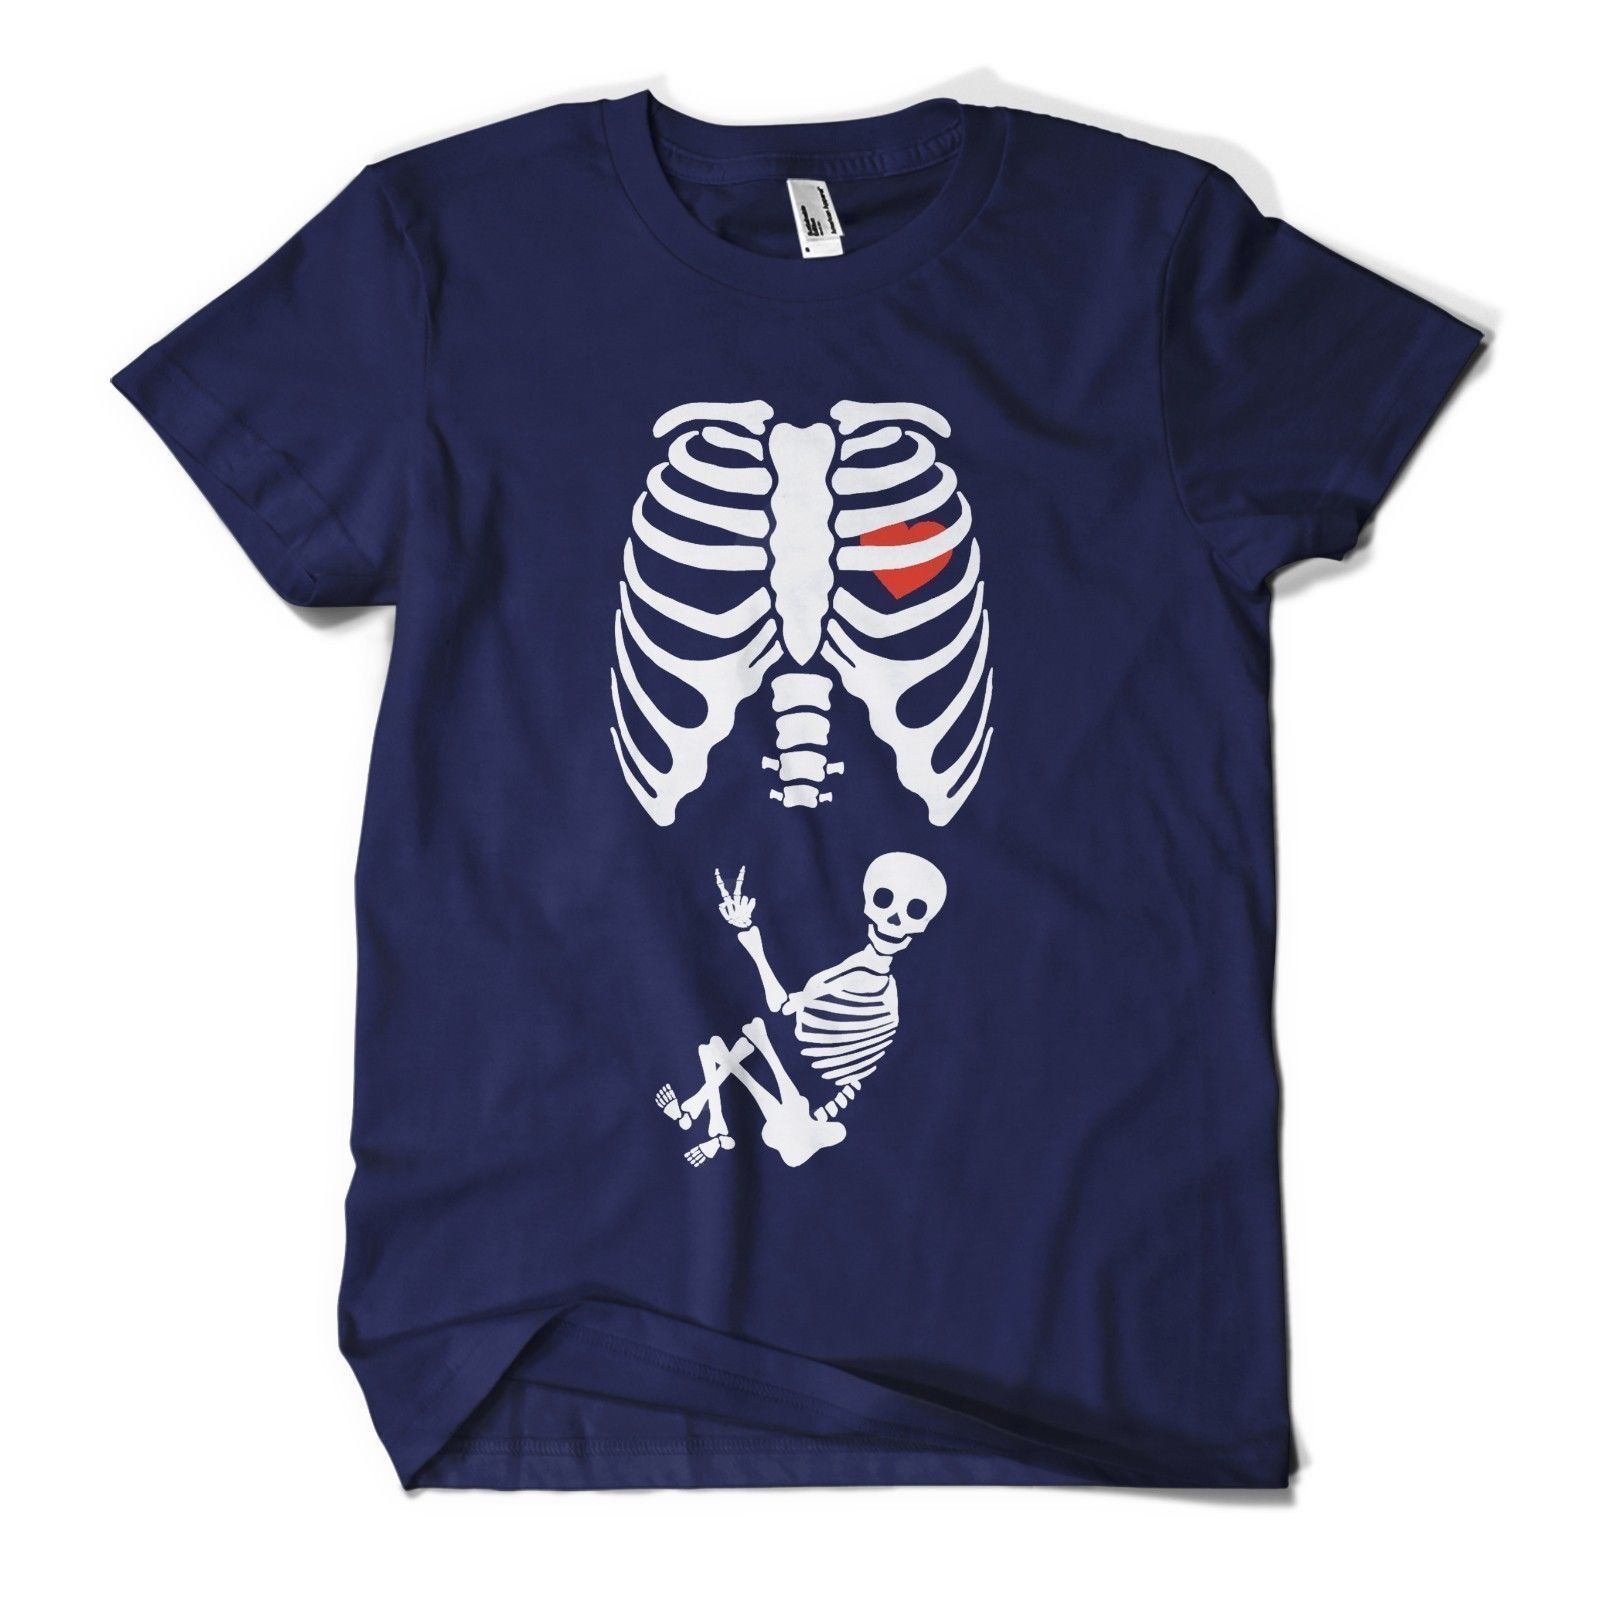 5e525f07acd43 Baby Skeleton T Shirt Maternity Pregnant Halloween Funny Joke Mens Girls  Tee Top New T Shirts Funny Tops Tee free shipping